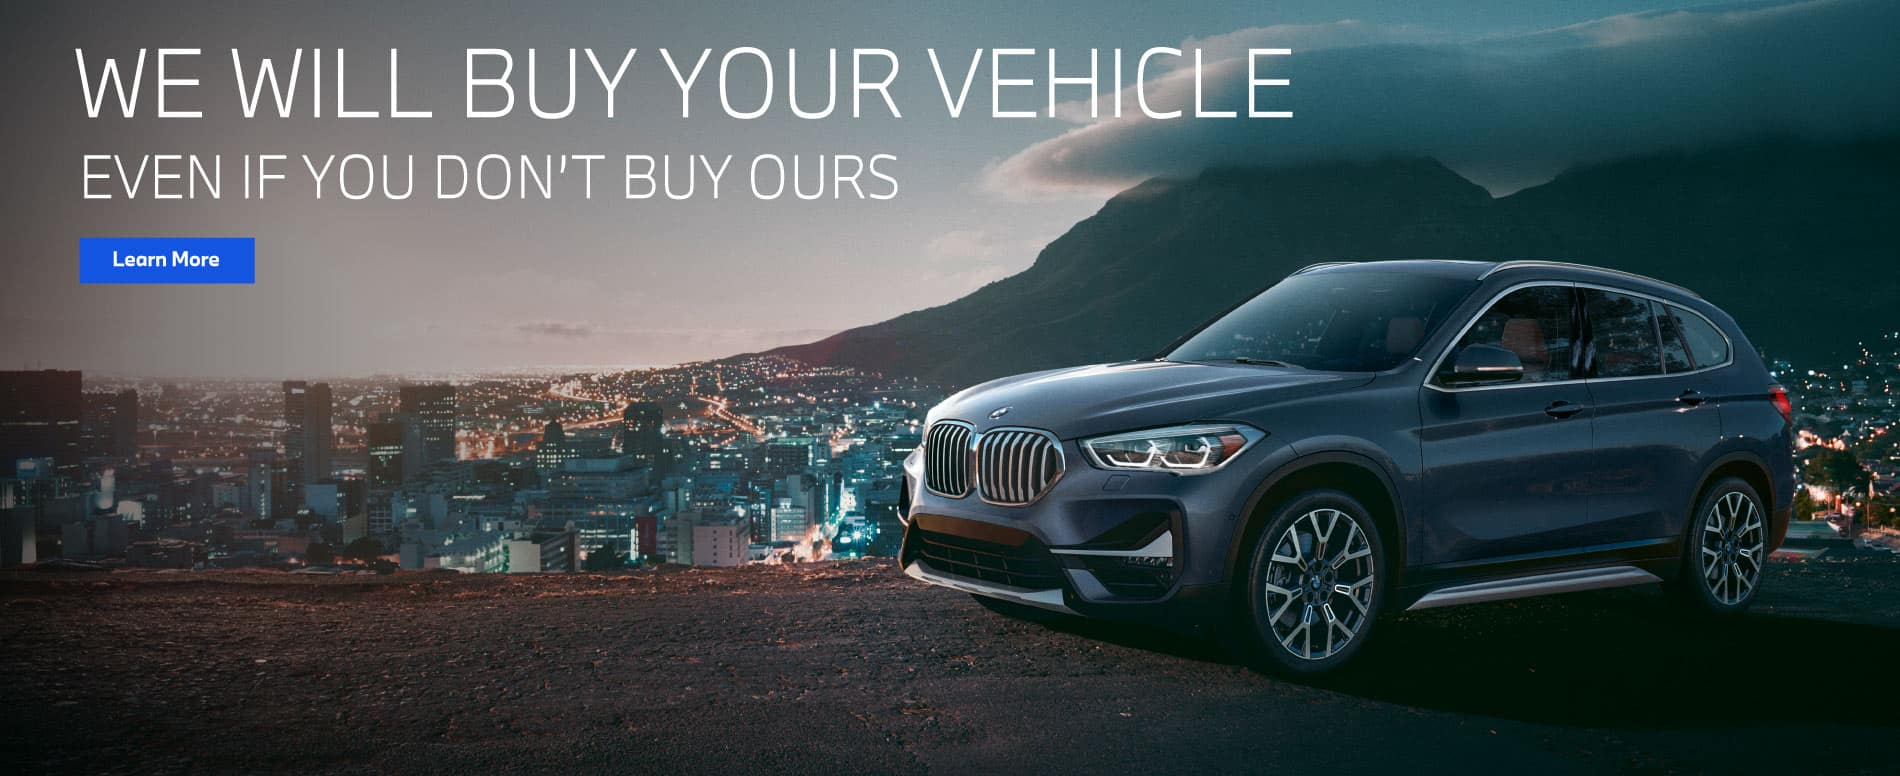 We will buy your vehicle even if you don't buy ours. Learn More.